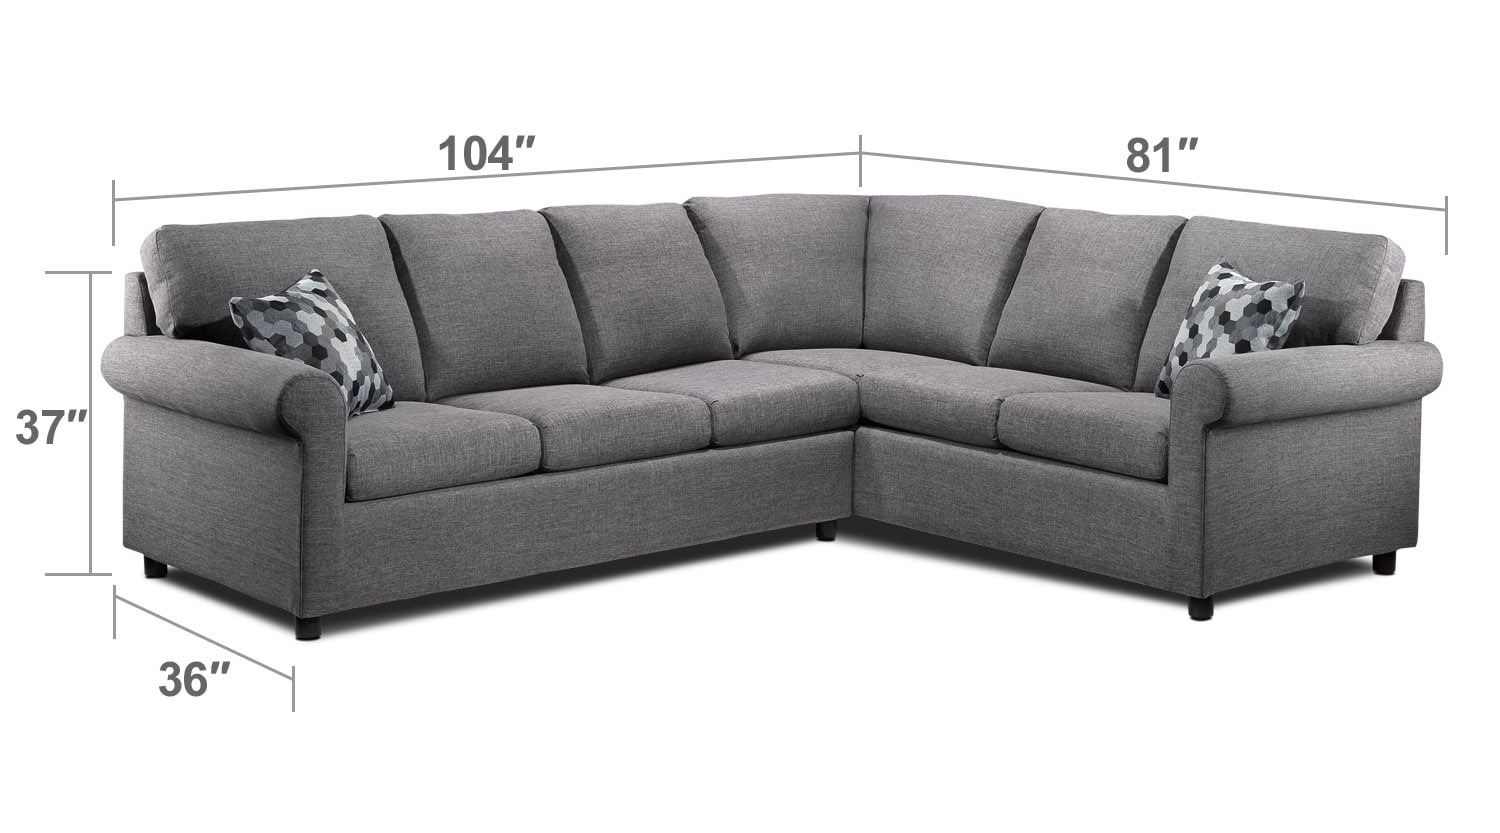 Living Room Furniture - Tambora 2-Piece Sofabed Sectional - Grey